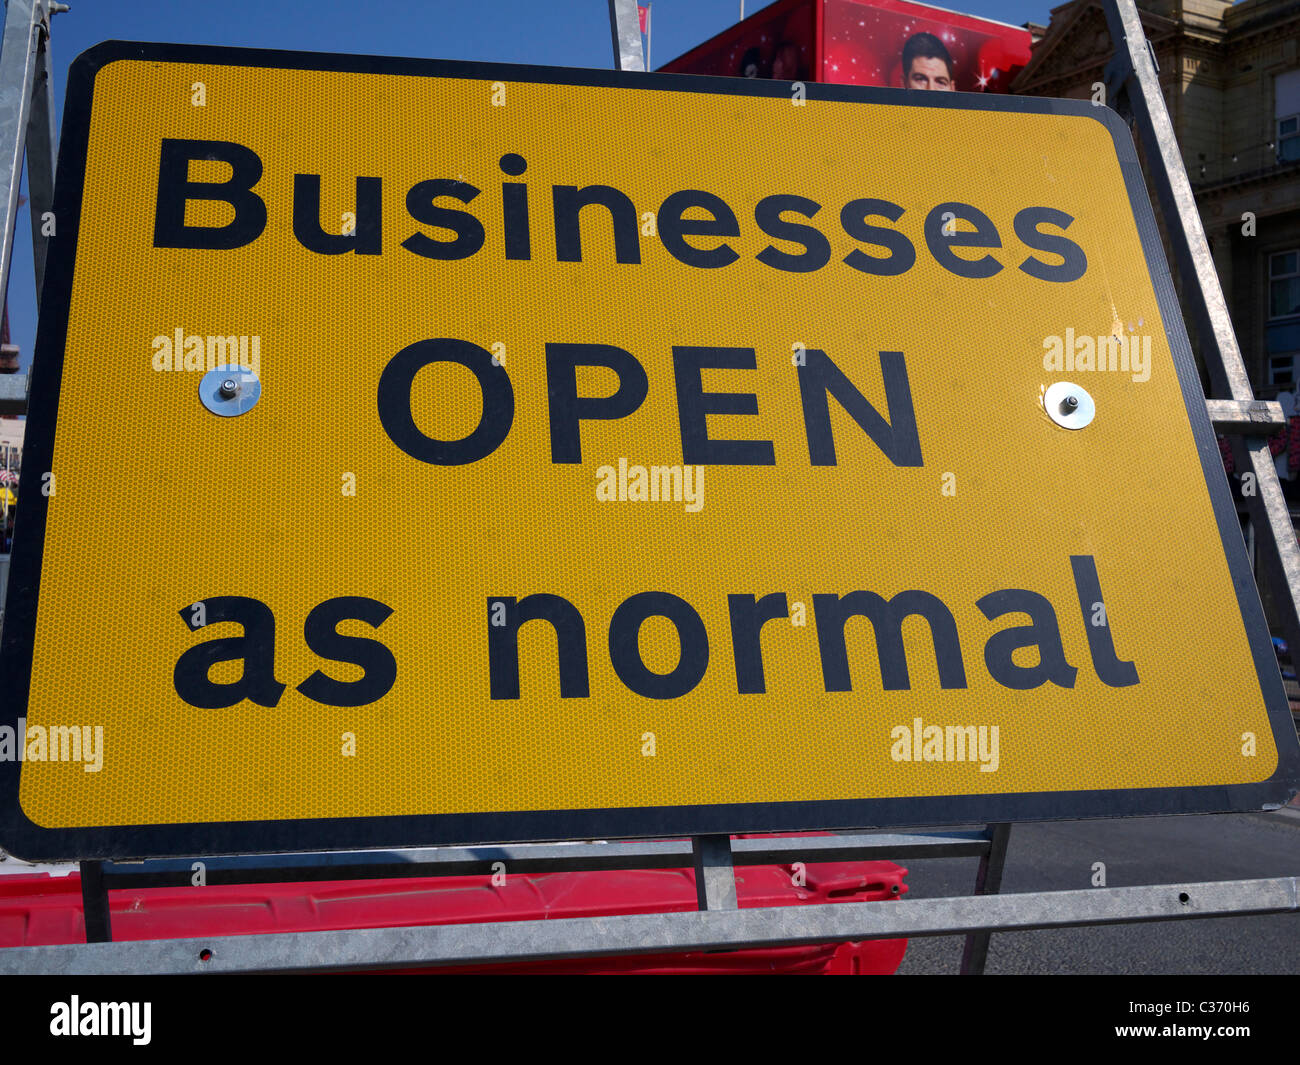 Businesses open as normal road sign along the promenade Blackpool Lancashire UK - Stock Image